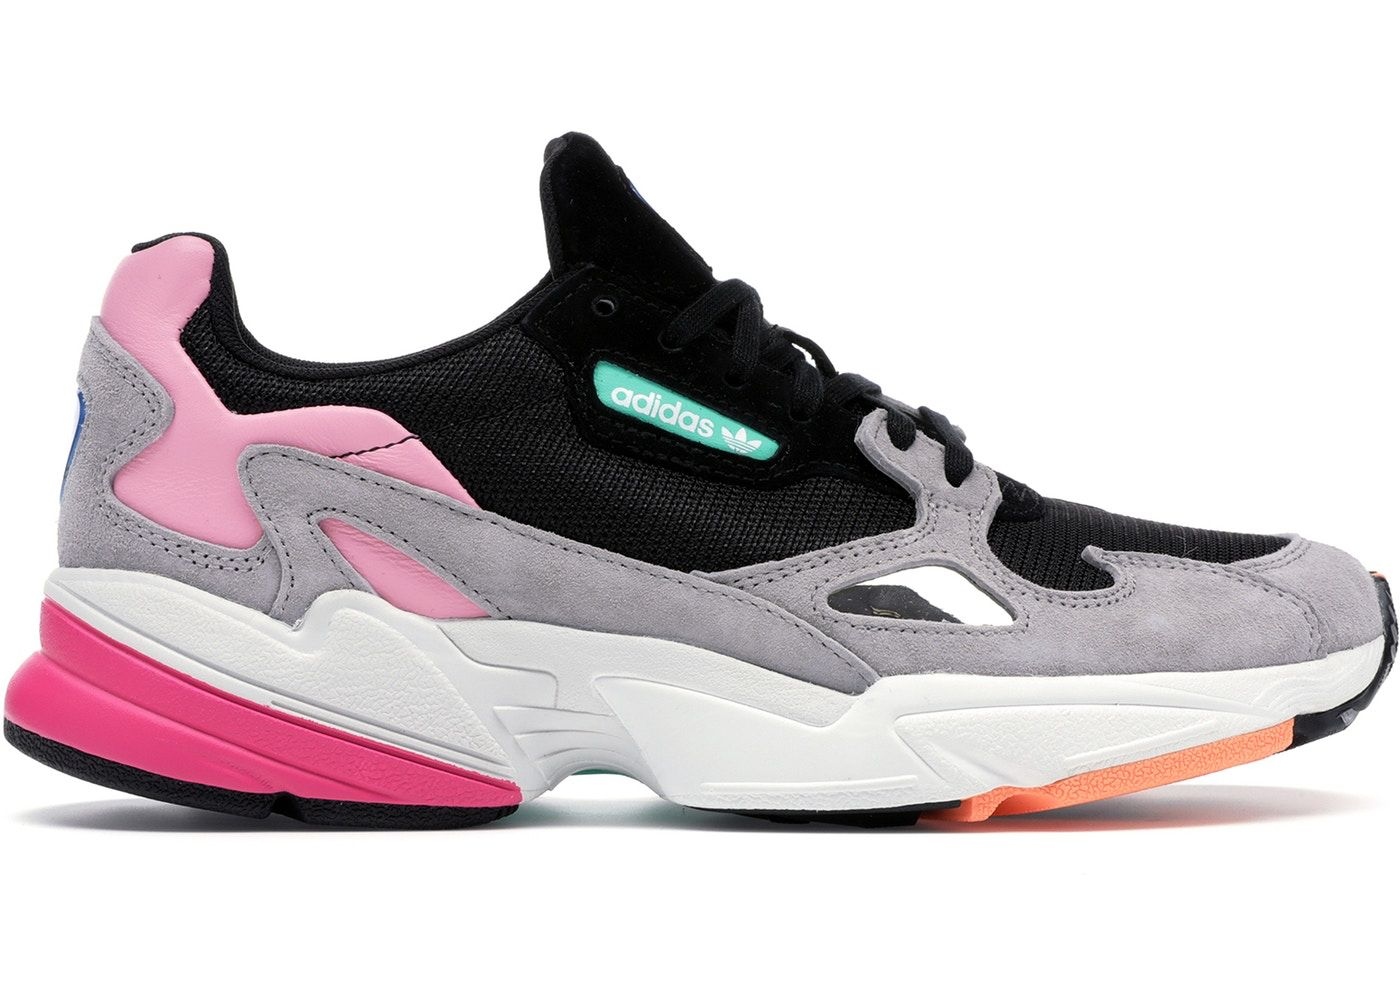 official photos 58165 4bfbb Check out the adidas Falcon Core Black Light Granite available on StockX